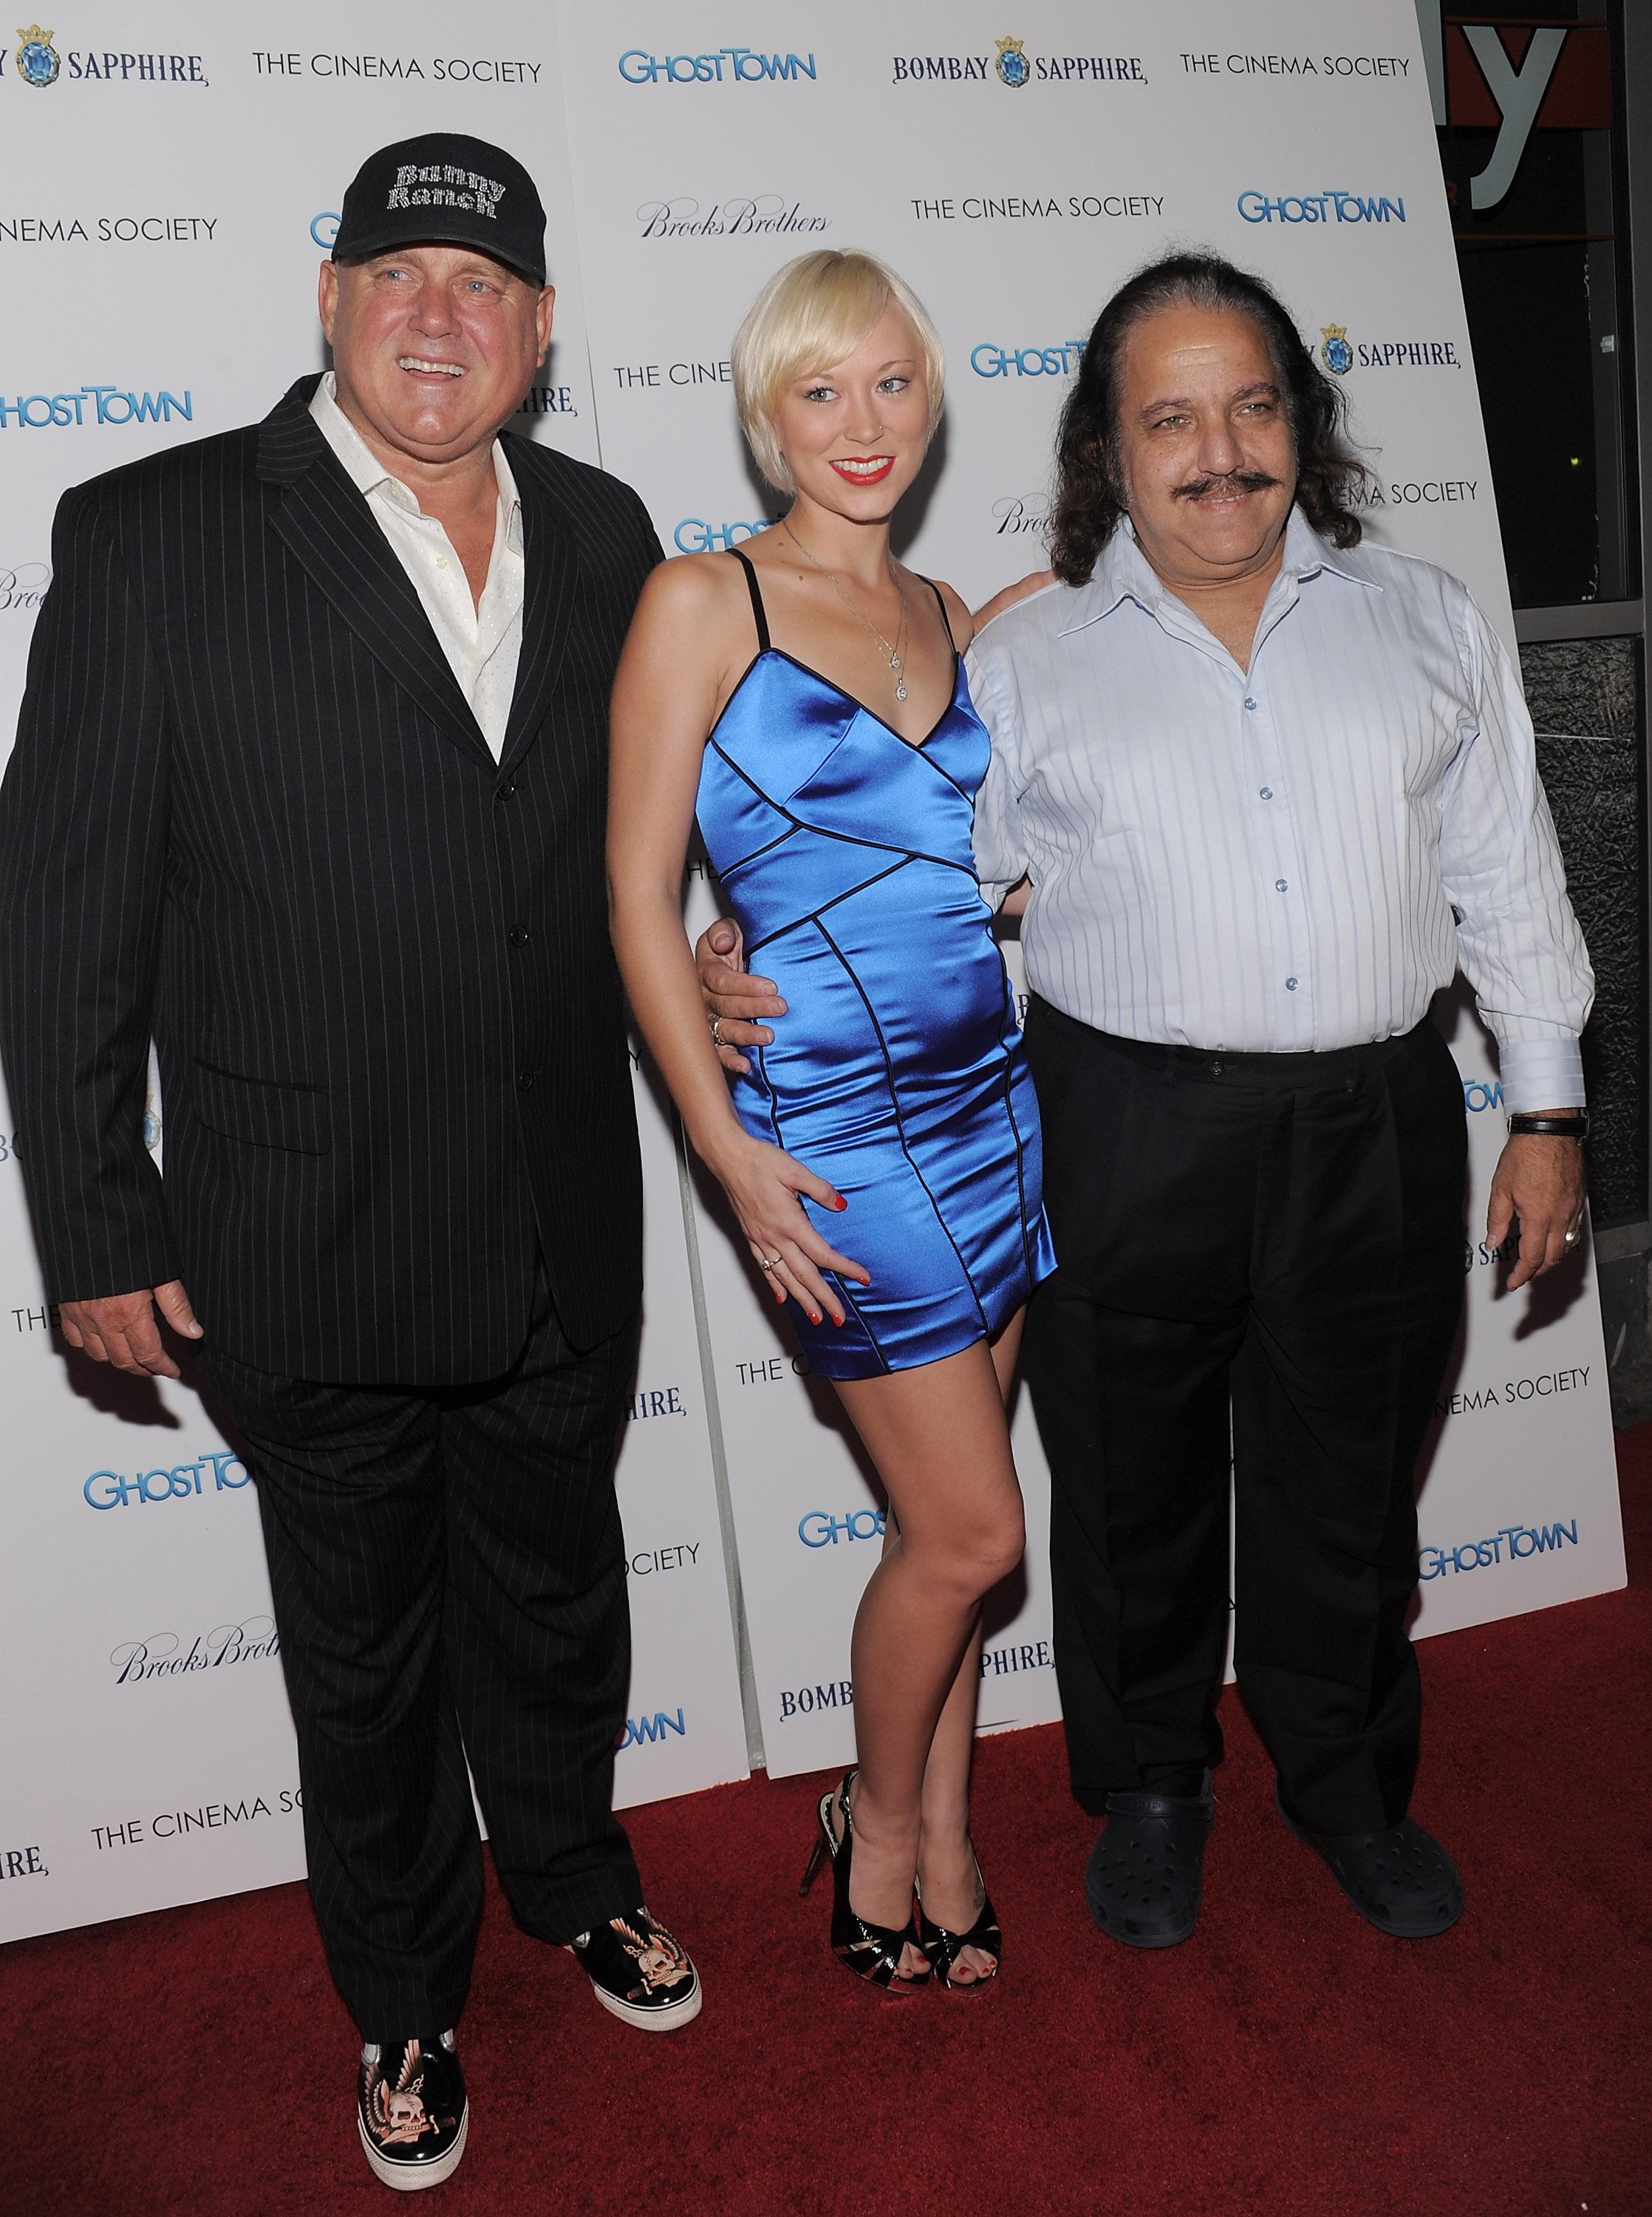 "From left, Dennis Hof, Brooke Taylor and Ron Jeremy attend a Cinema Society screening of ""Ghost Town"" at the IFC Center on Monday, Sept. 15, 2008 in New York. (AP Photo/Evan Agostini)"